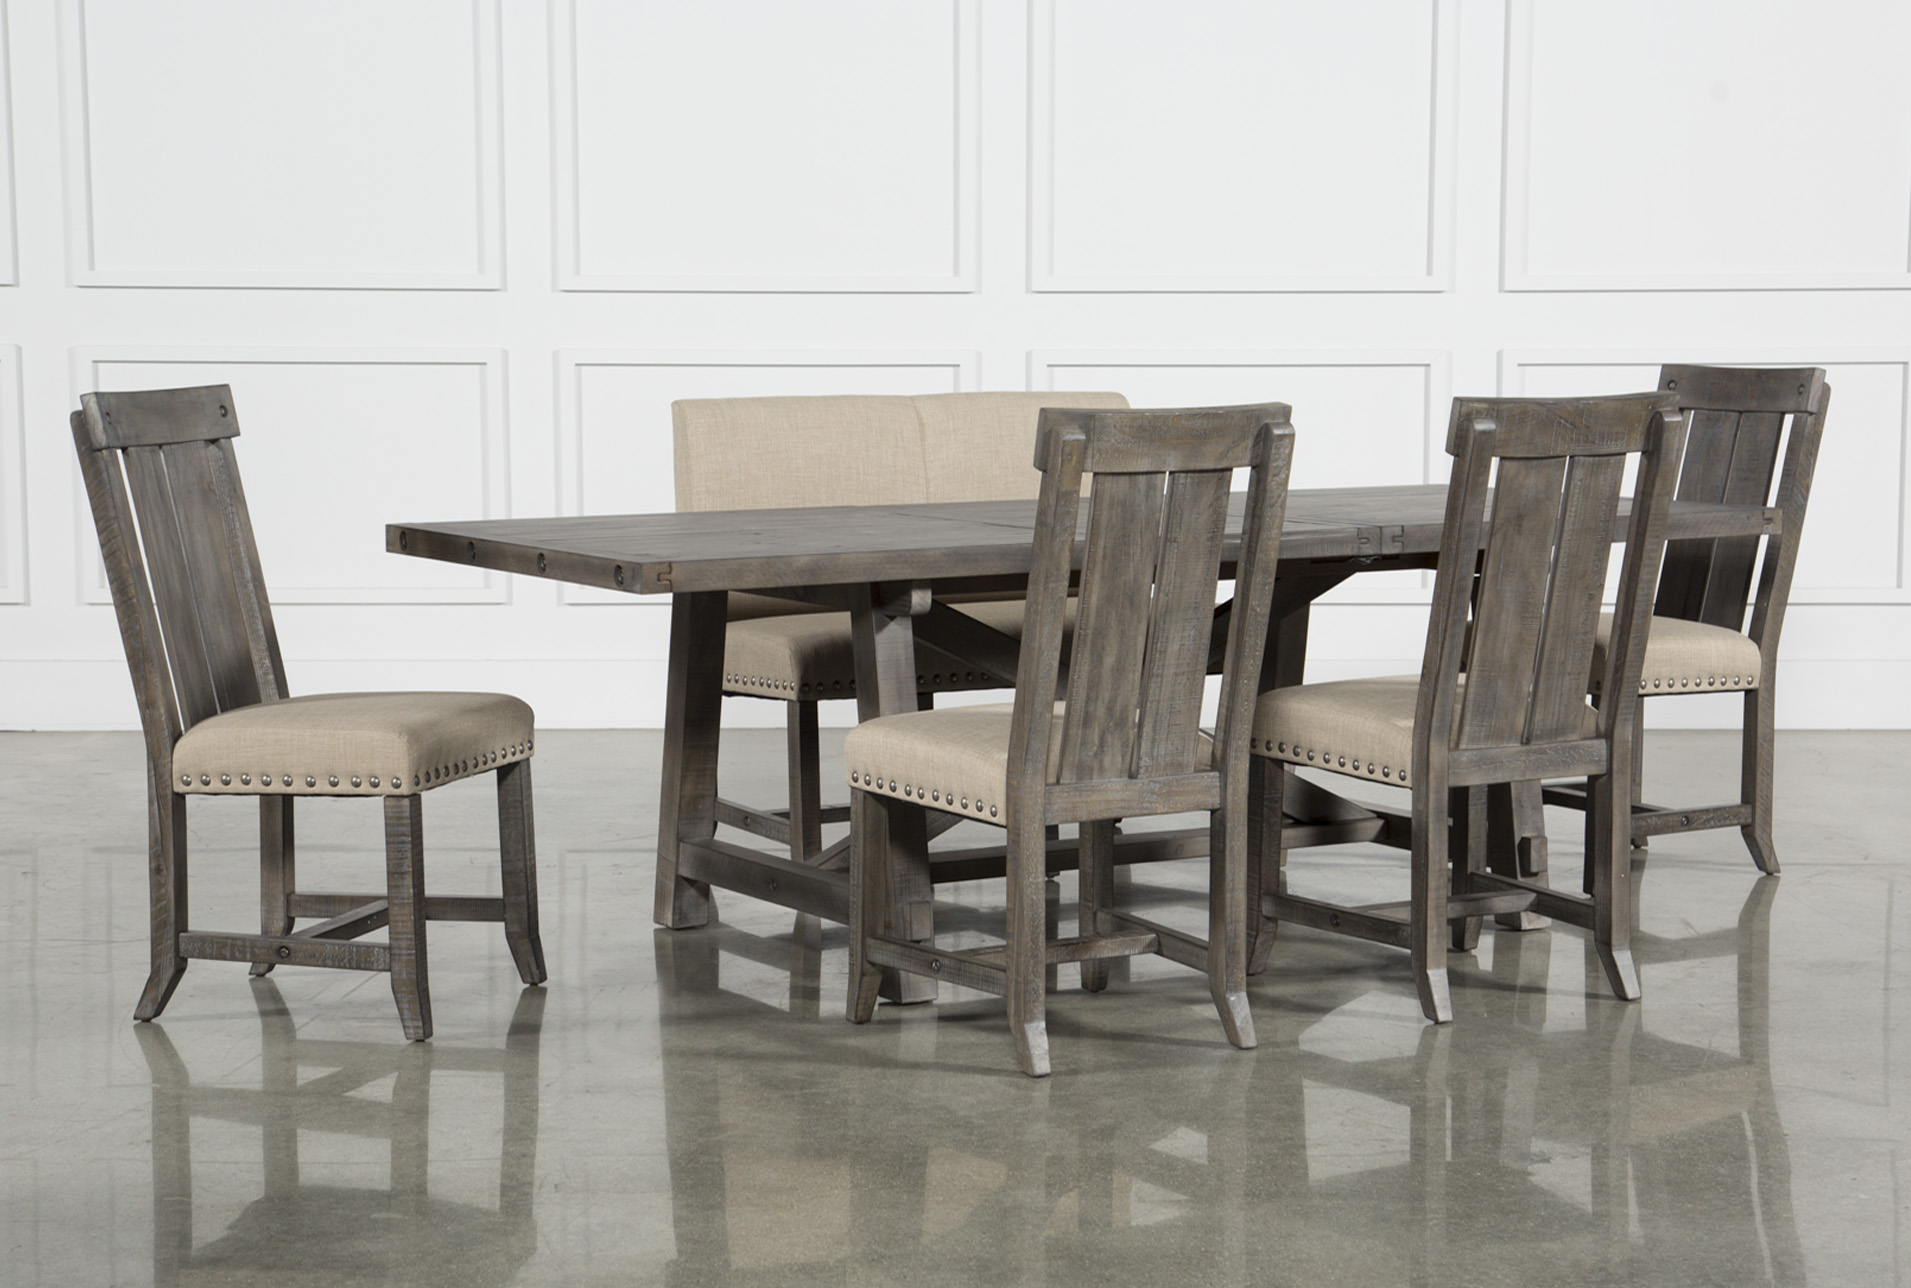 Ordinaire Jaxon Grey 6 Piece Rectangle Extension Dining Set W/Bench U0026 Wood Chairs    360